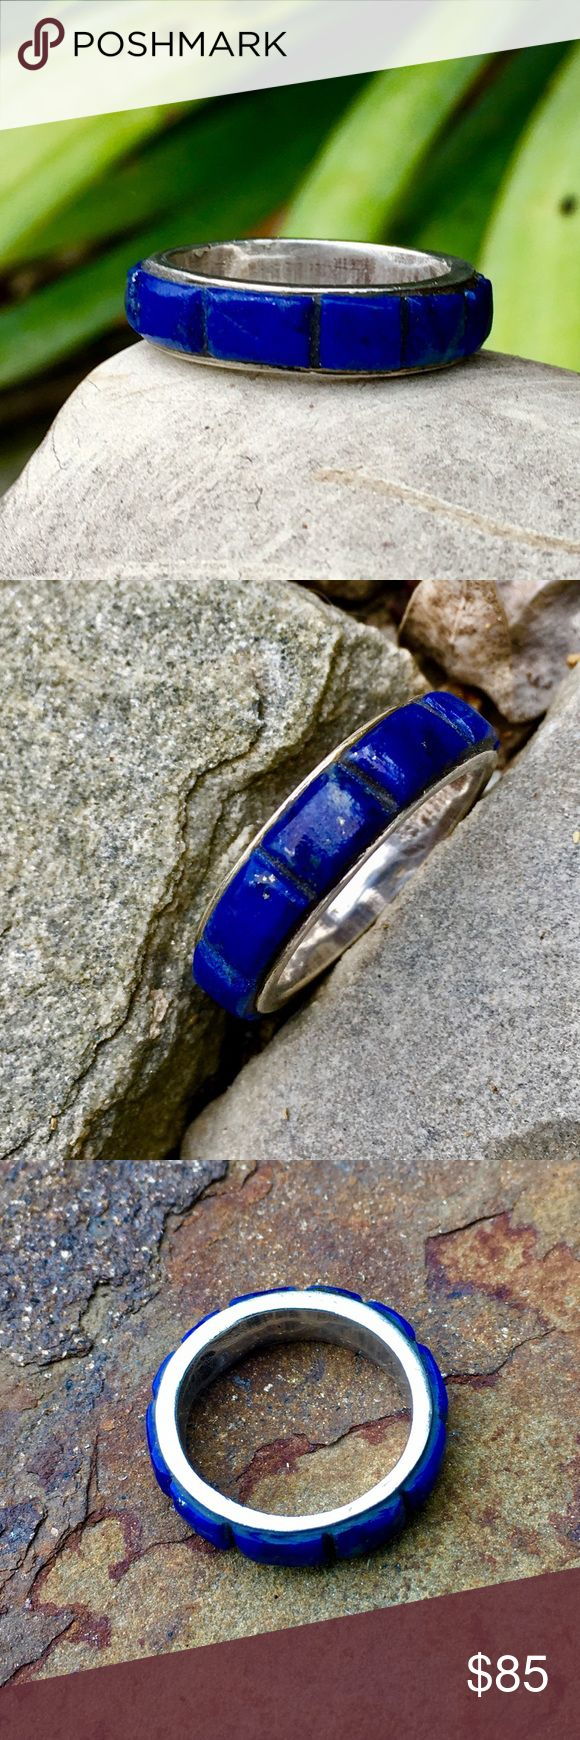 Vintage Sterling Channel Set Lapis Lazuli Ring *Vintage, Sterling Lapis Band, Lapis Lazuli Stones are 4mm wide, channel set, and vary in length from 4-9mm. Stones have visible Gold colored Matrix, other than expected wear for Vintage piece, all stones are intact. Tool Marks are evident, and Ring tests positive for Sterling, tho I have no verifiable history or Authentication for this fabulous piece, It's clearly Hand Cast 6.7g Jewelry Rings